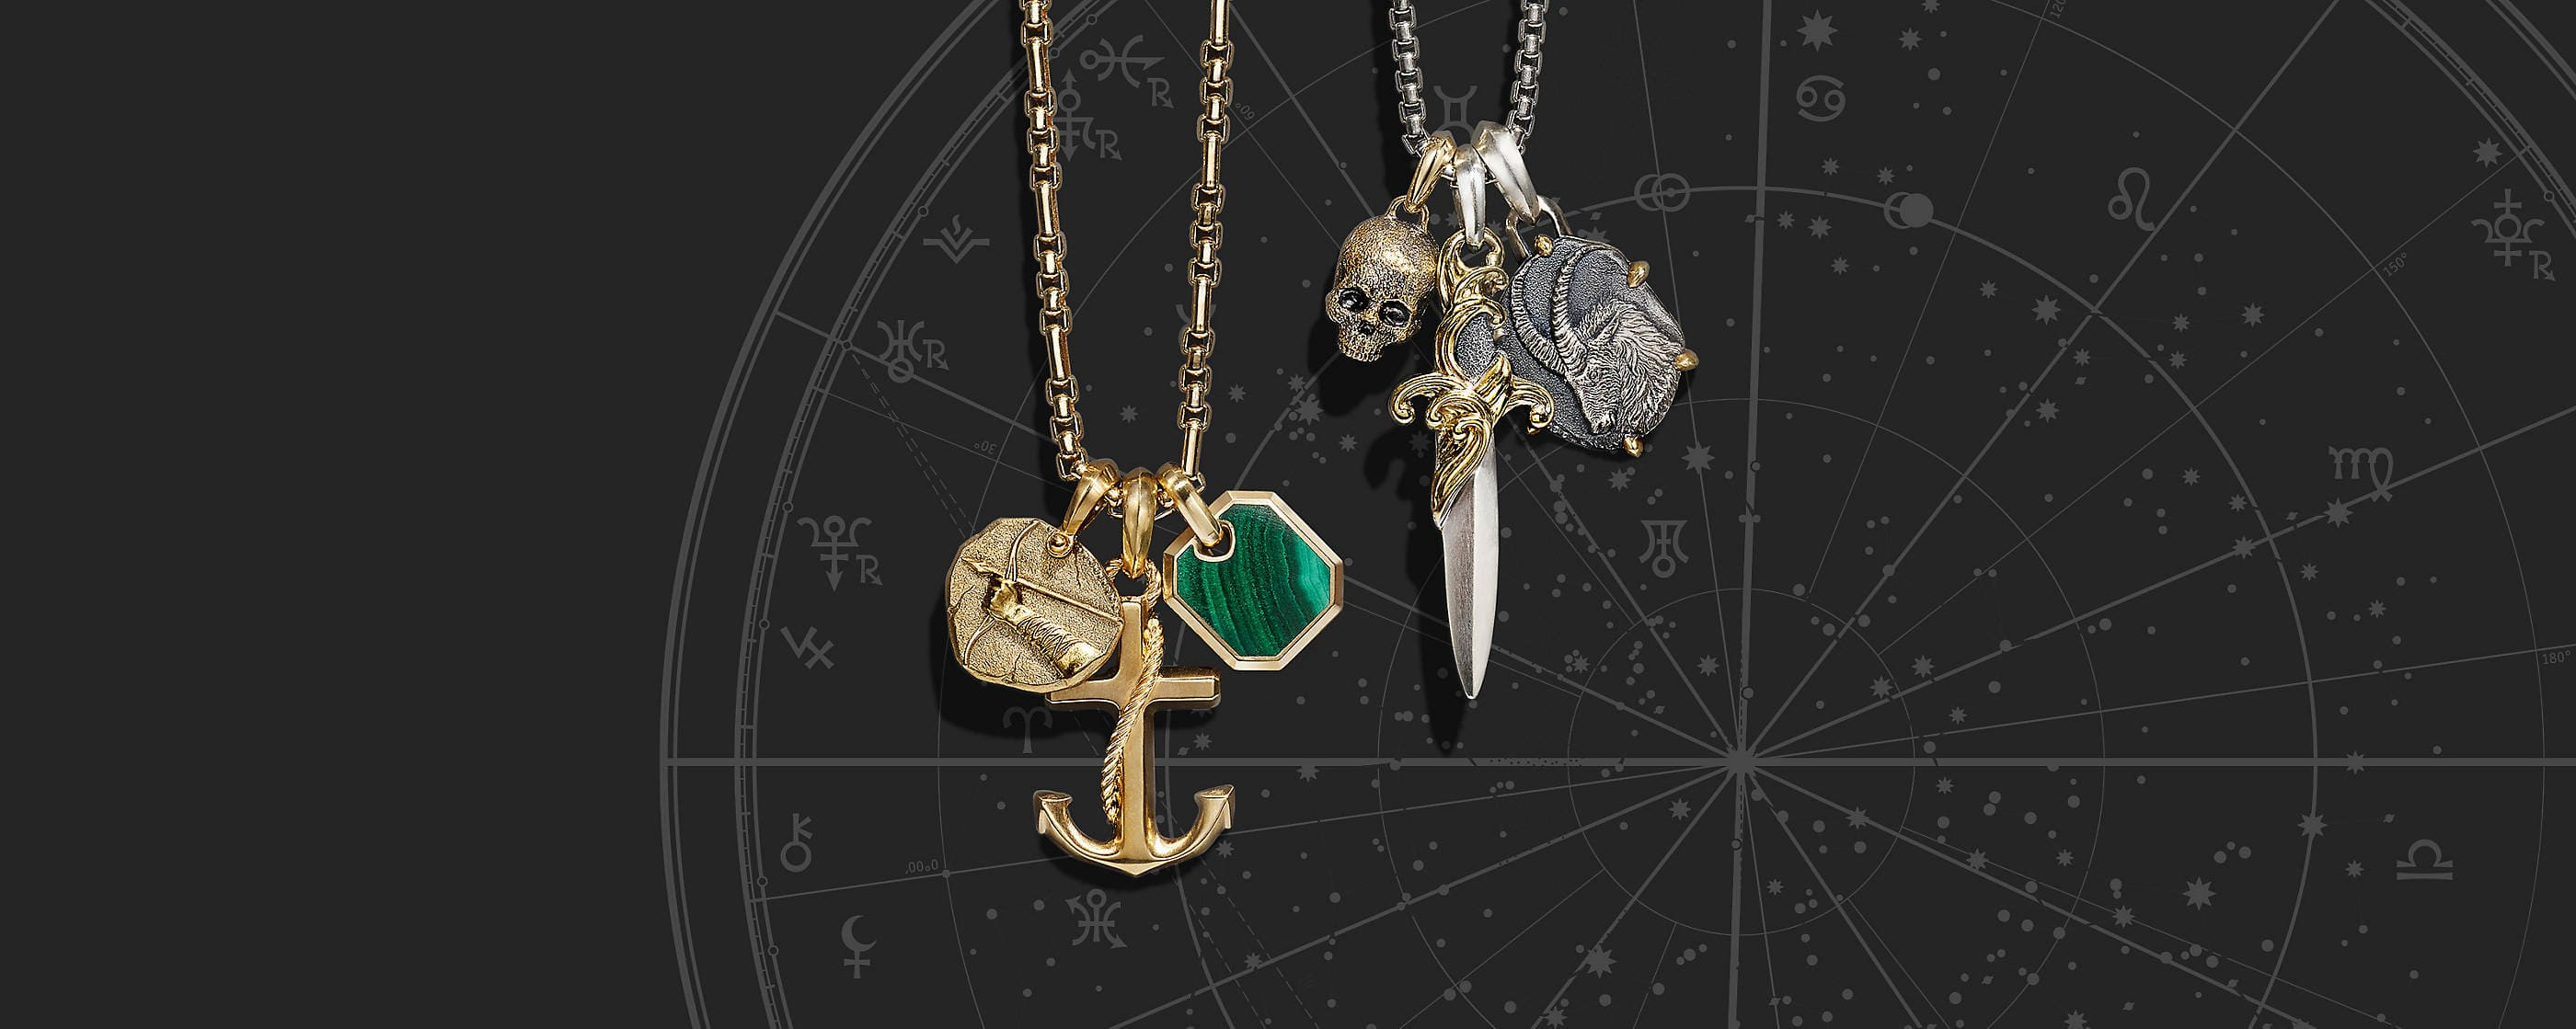 An image shows two chain necklaces threaded with three charms.One necklace and set of charms are crafted from 18K yellow gold depicting an archer's arm with a bow and arrow, an anchor and a hexagon with a center malachite. The other necklace and set of charms are crafted from sterling silver with or without 18K yellow gold accents. These charms depict a skull, a dagger and a sea goat.